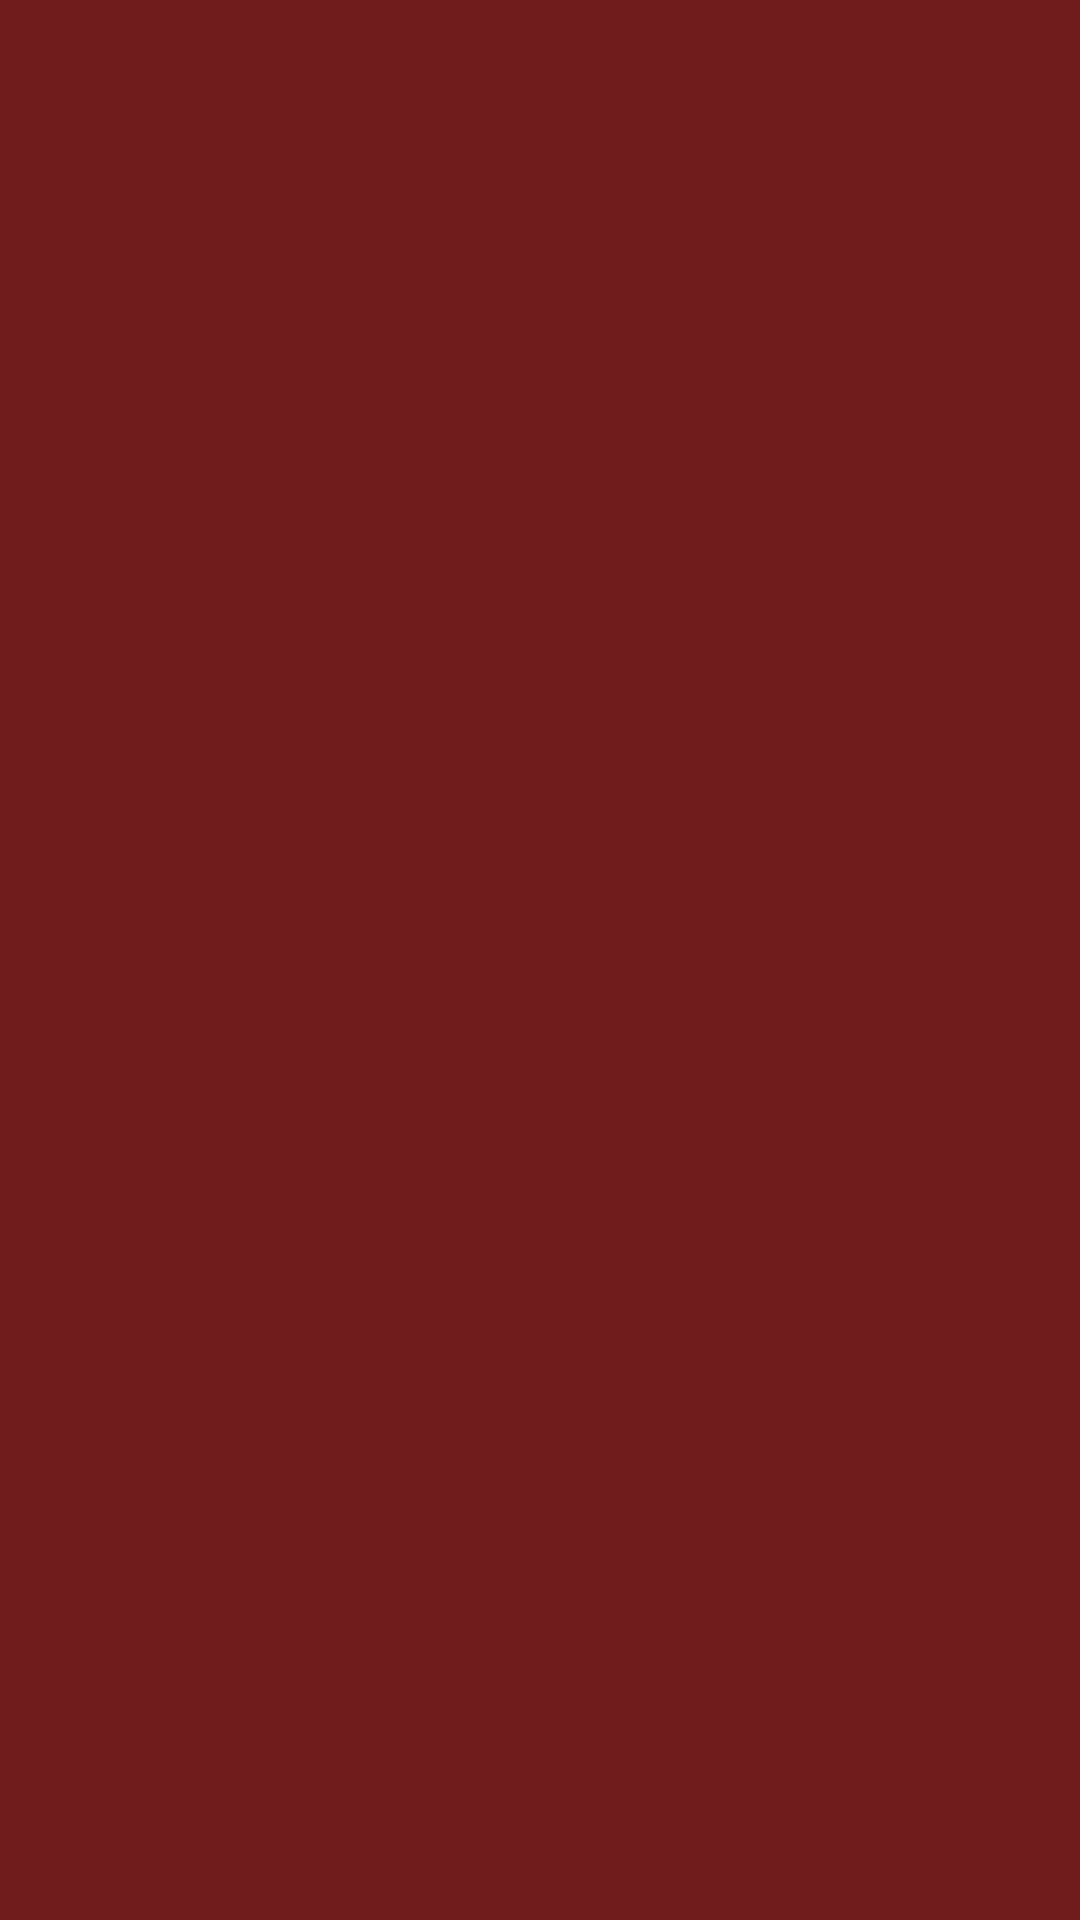 1080x1920 Persian Plum Solid Color Background